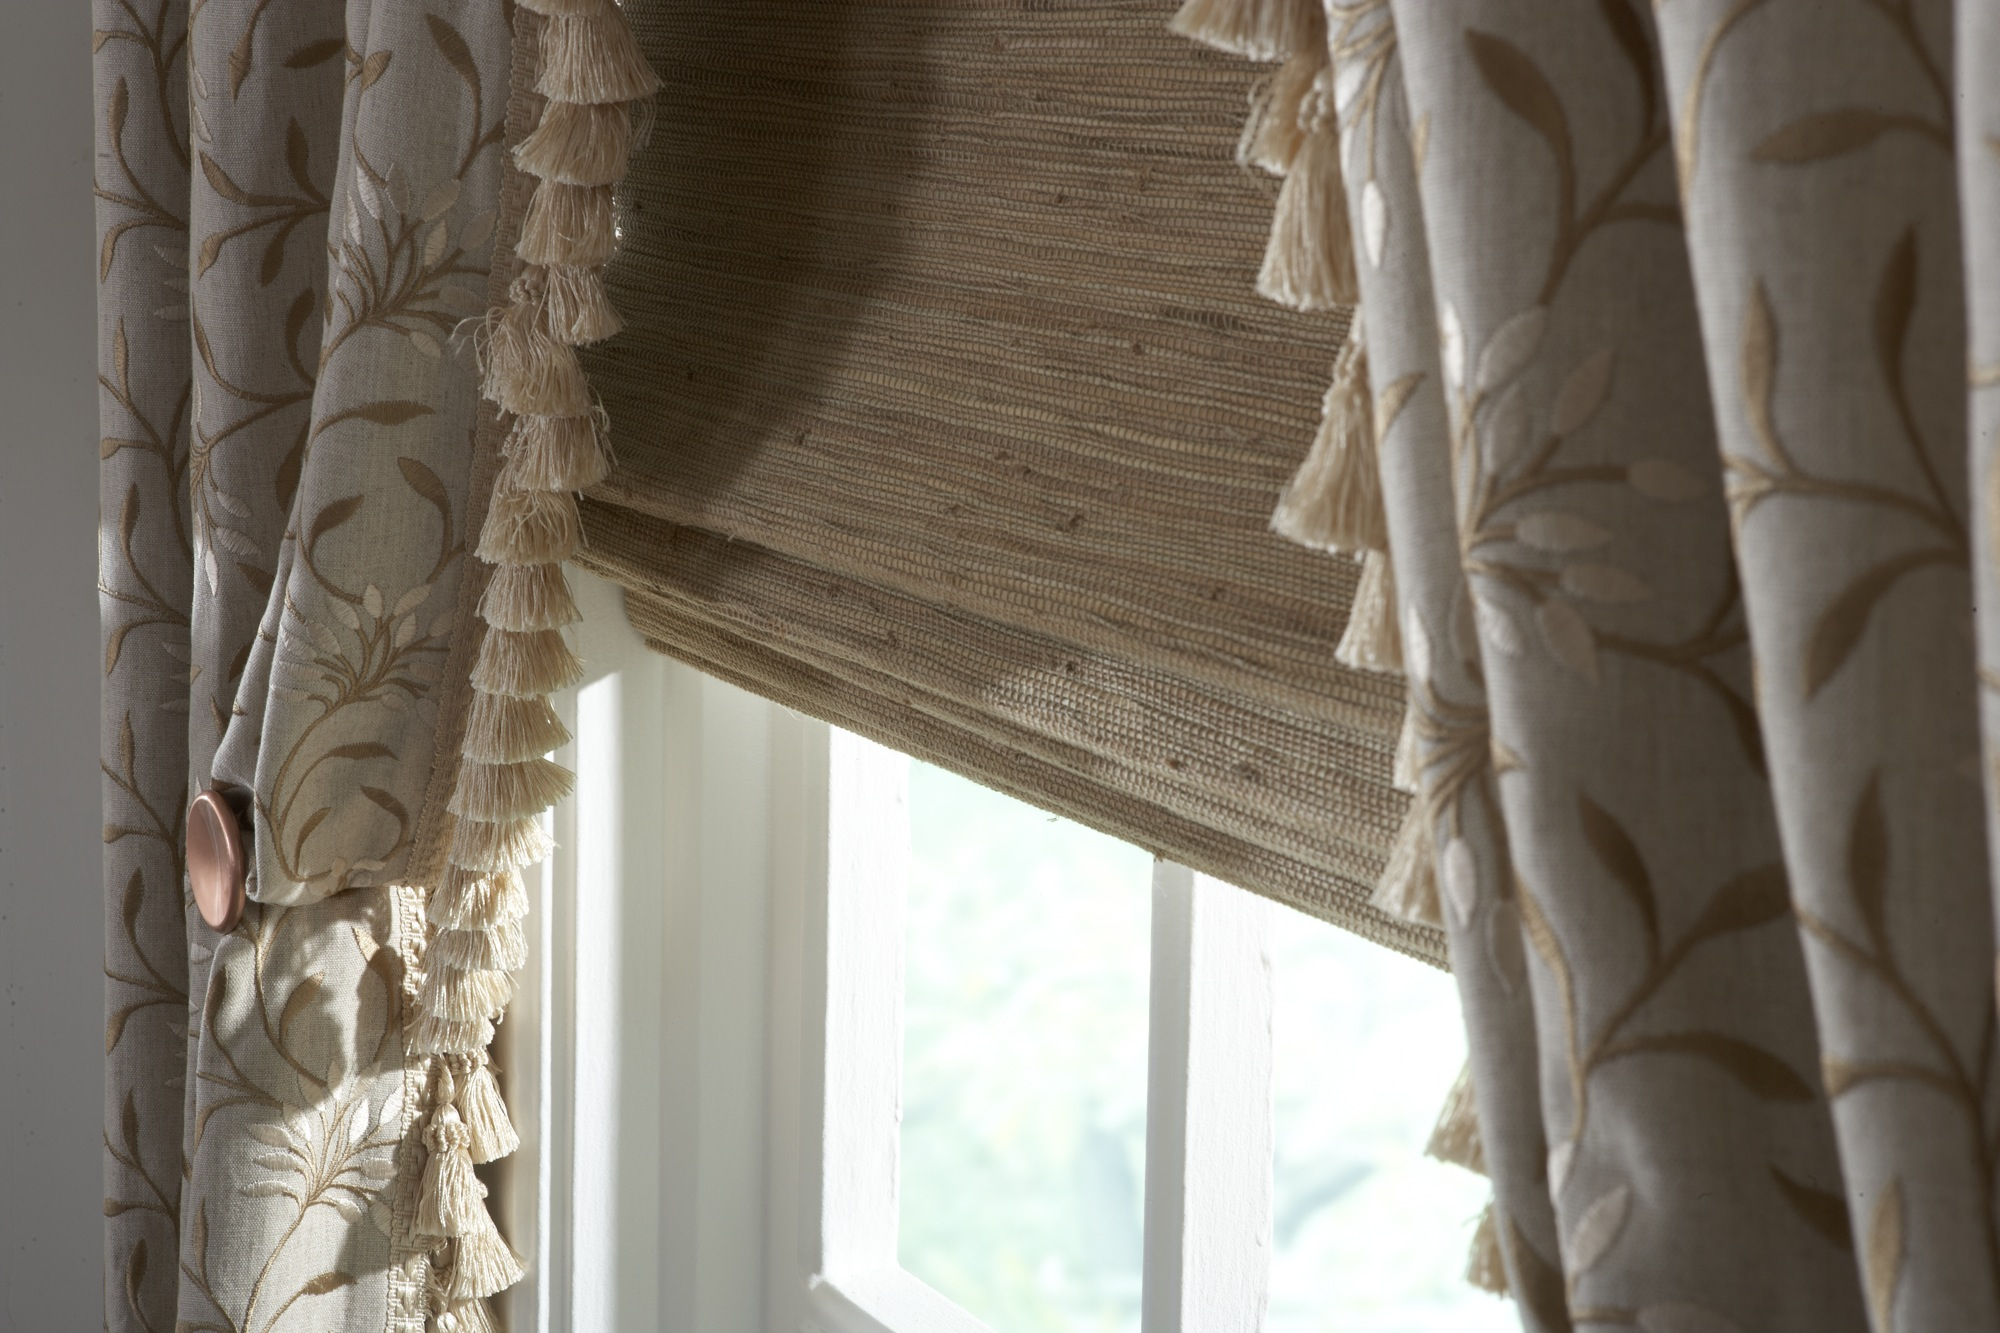 Natural Woven Shades Featuring Cordless One Operating System Custom Window Treatments By Jacoby Company Custom Window Treatments By Jacoby Company